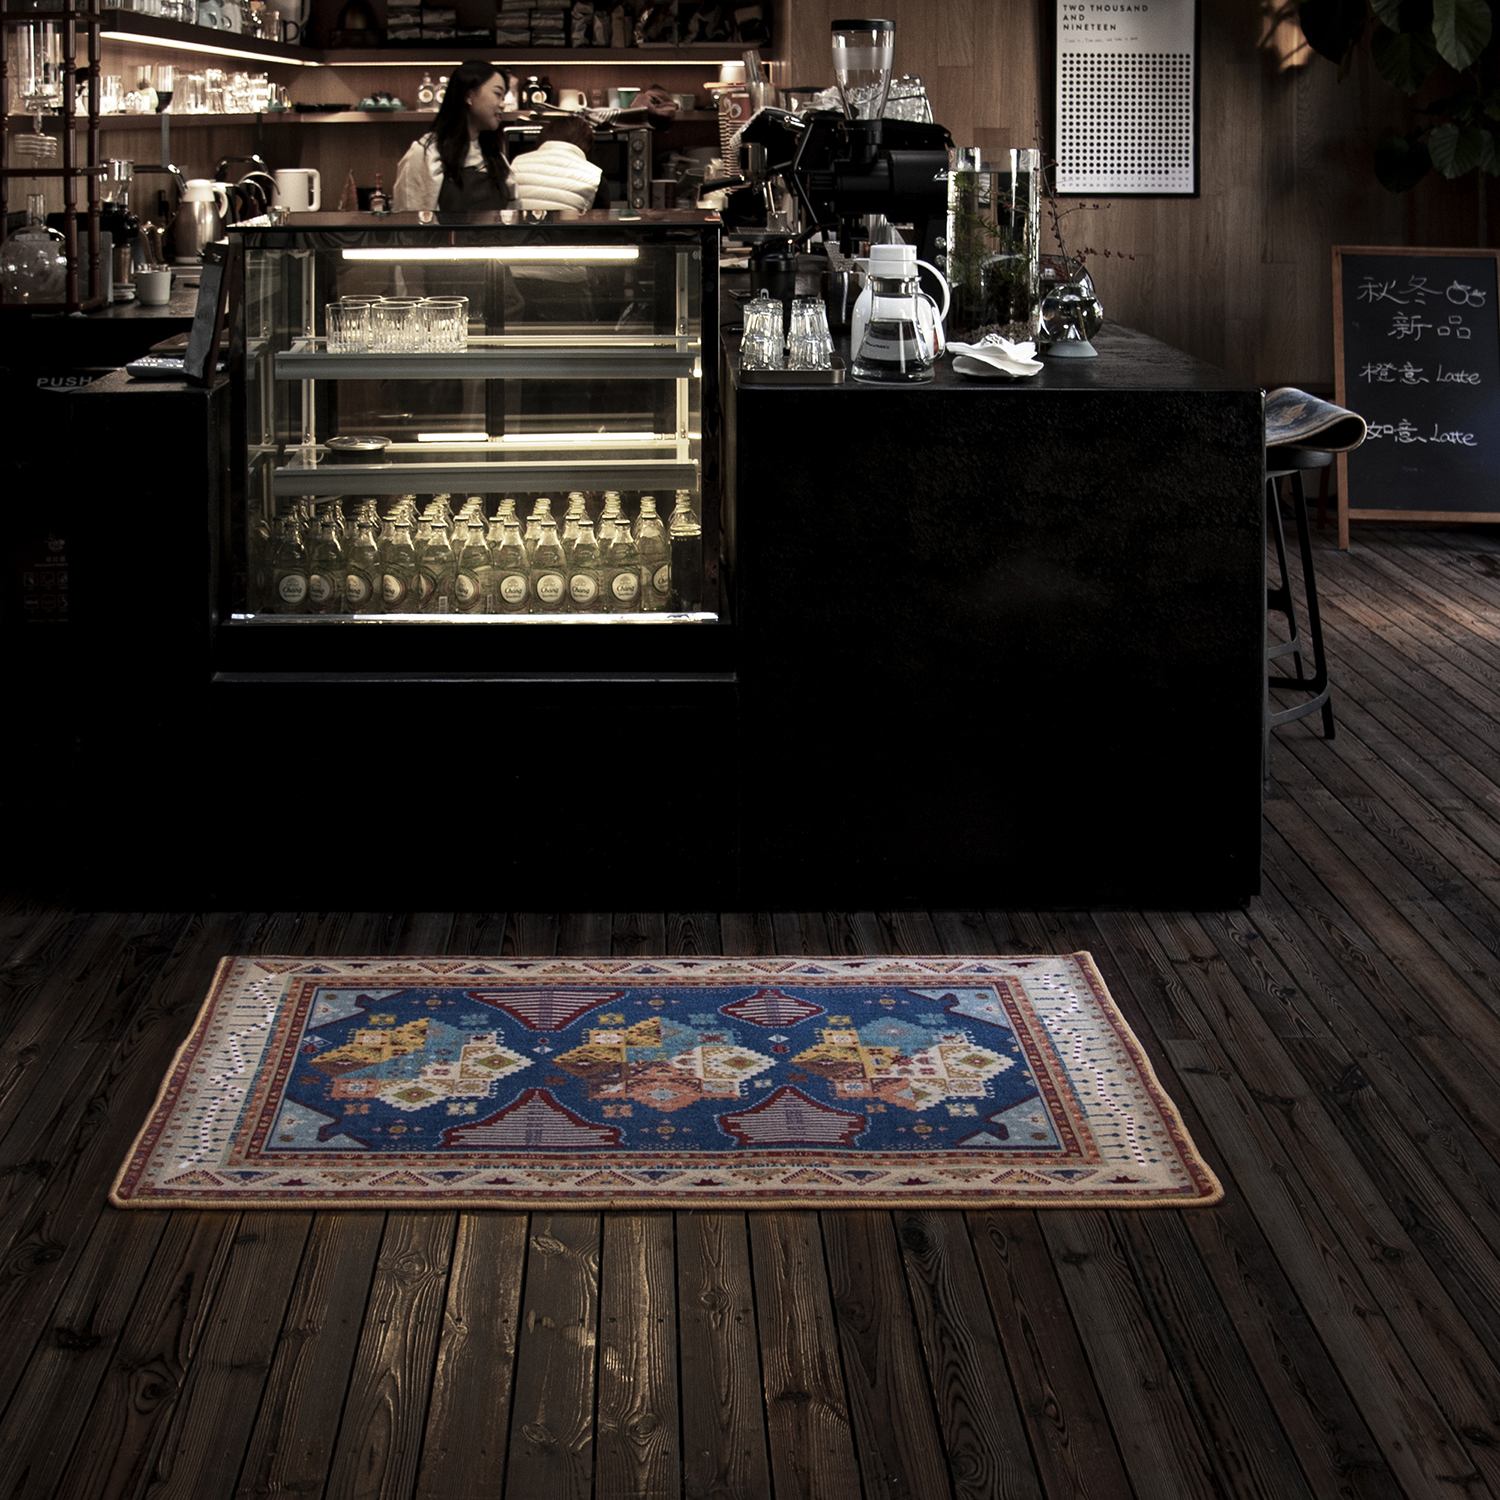 carpet designed by Miao Zhao in use in a cafe